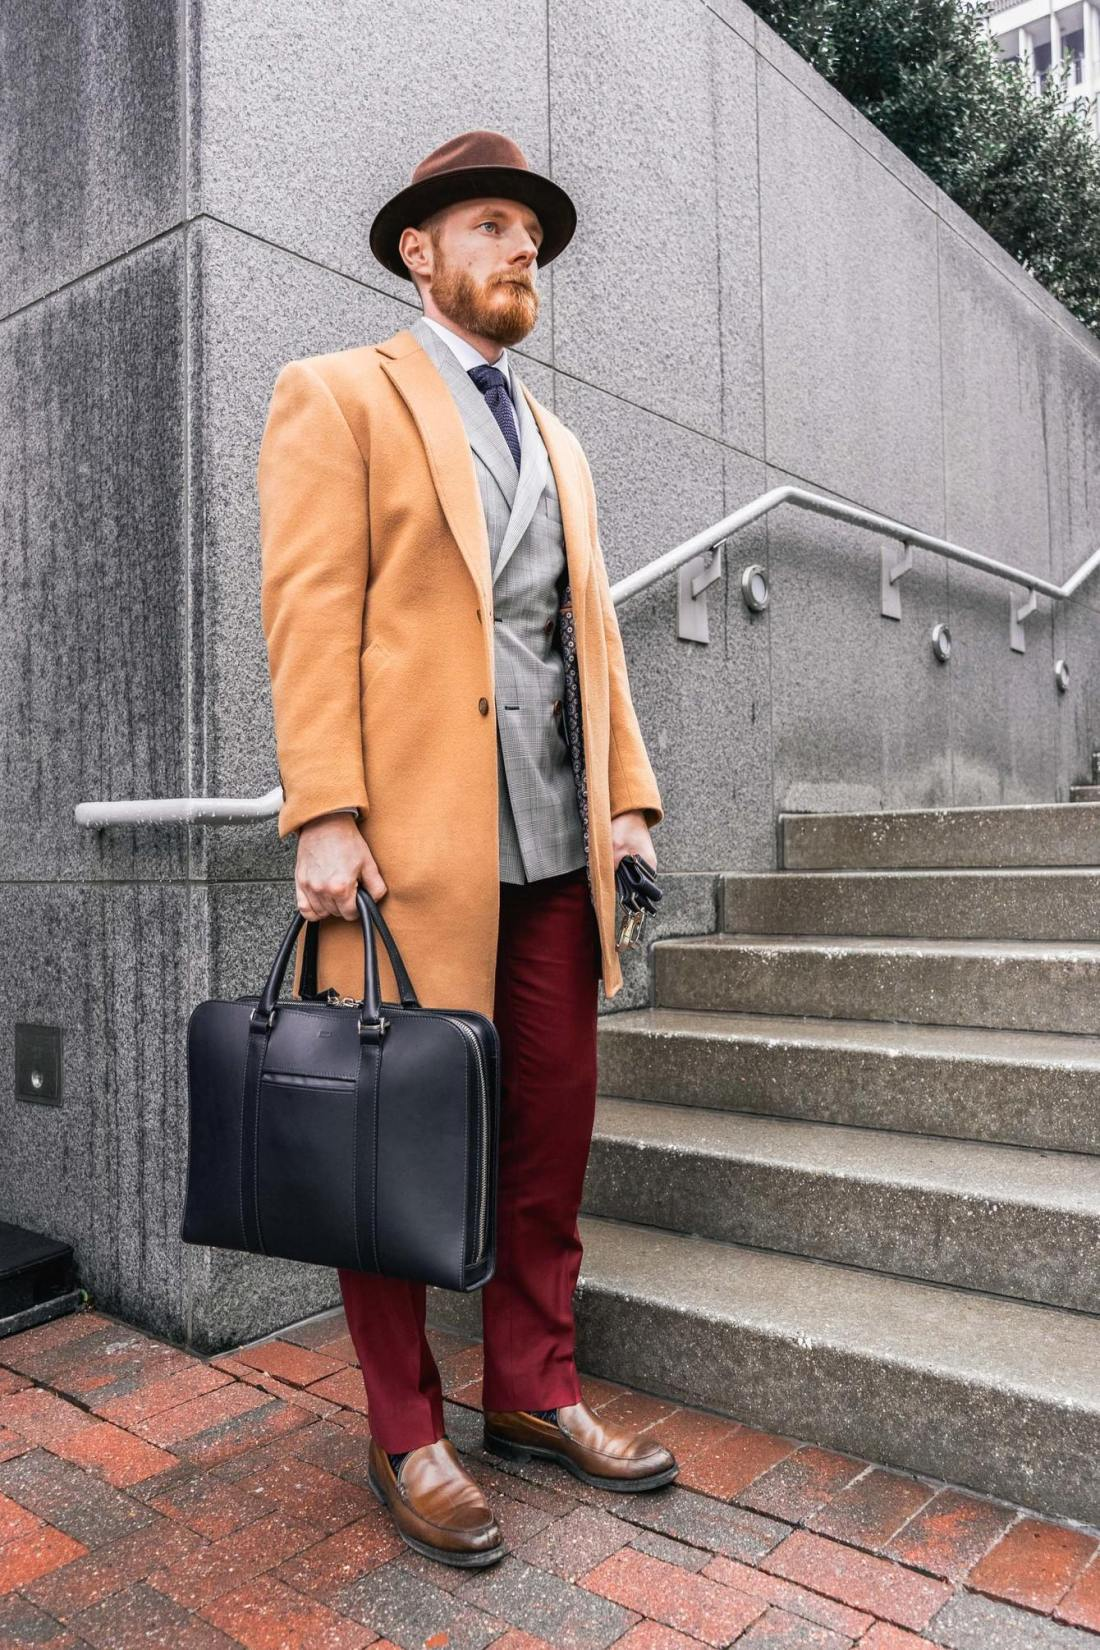 Robert Ordway holding briefcase